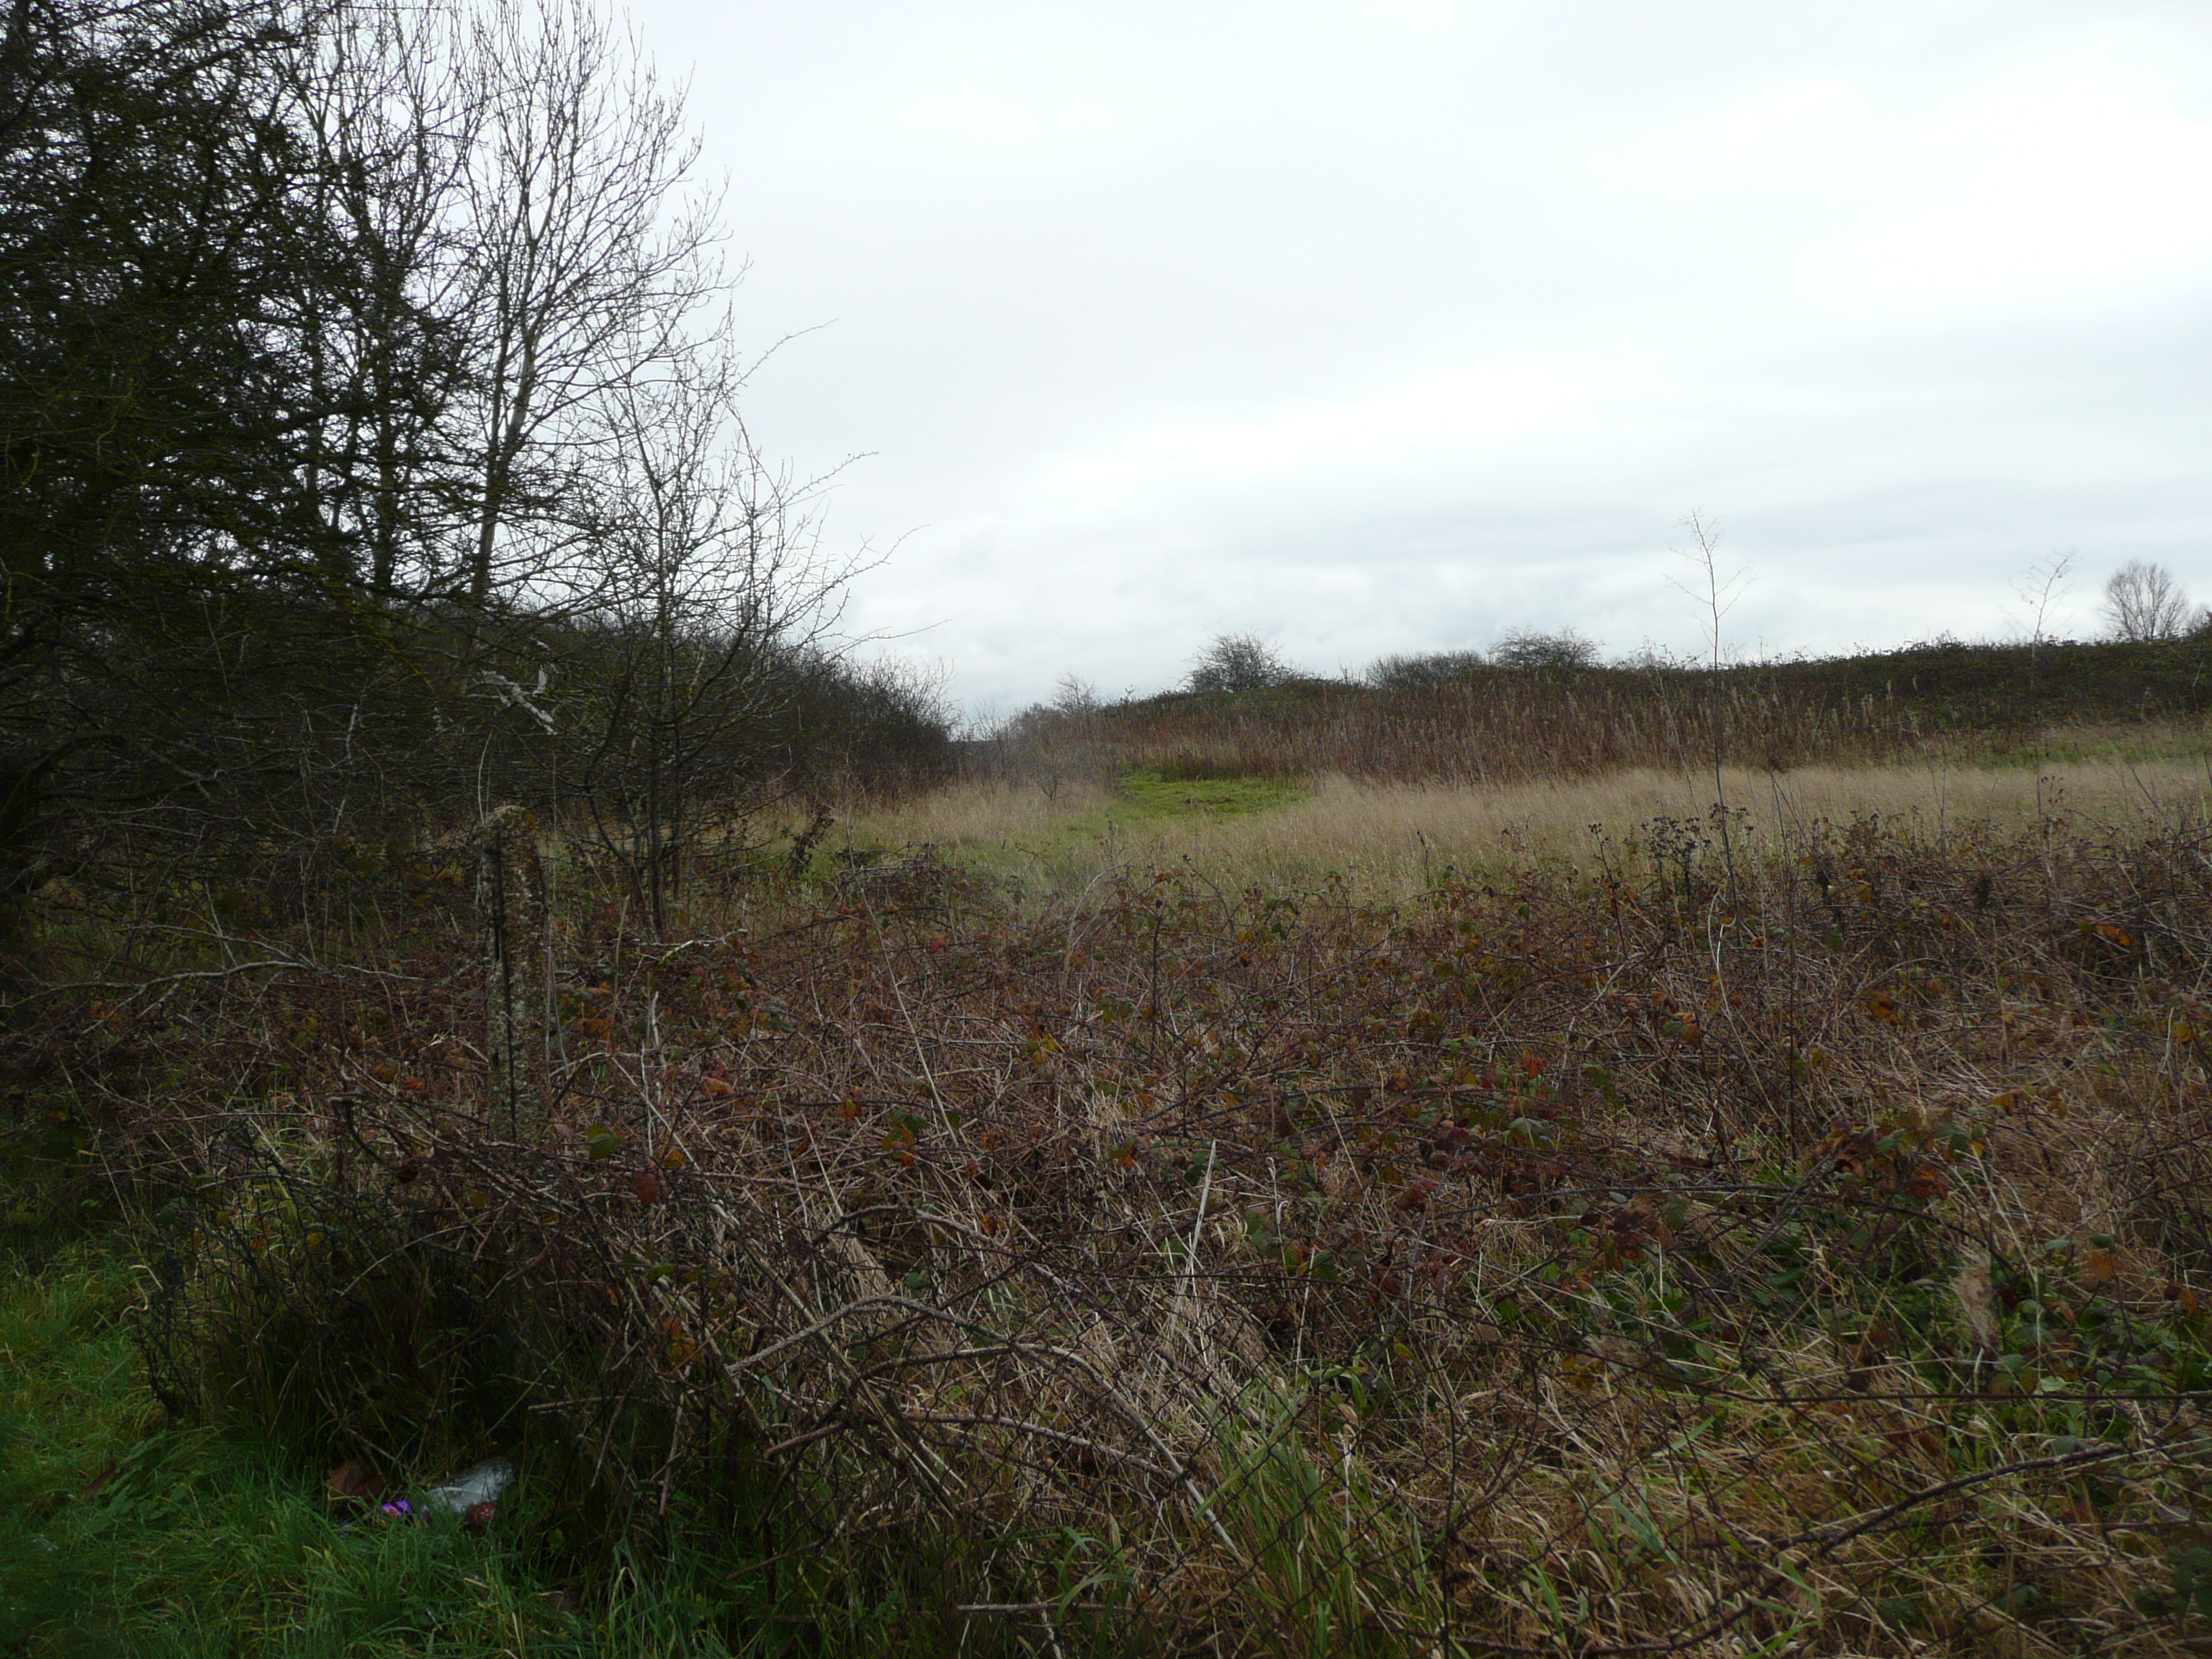 Site of migration cemetery 500m e of baginton church our warwickshire looking towards baginton airport across the scrubland of the landfill site on the sand gravel pit where the cemetery was 2017 publicscrutiny Gallery